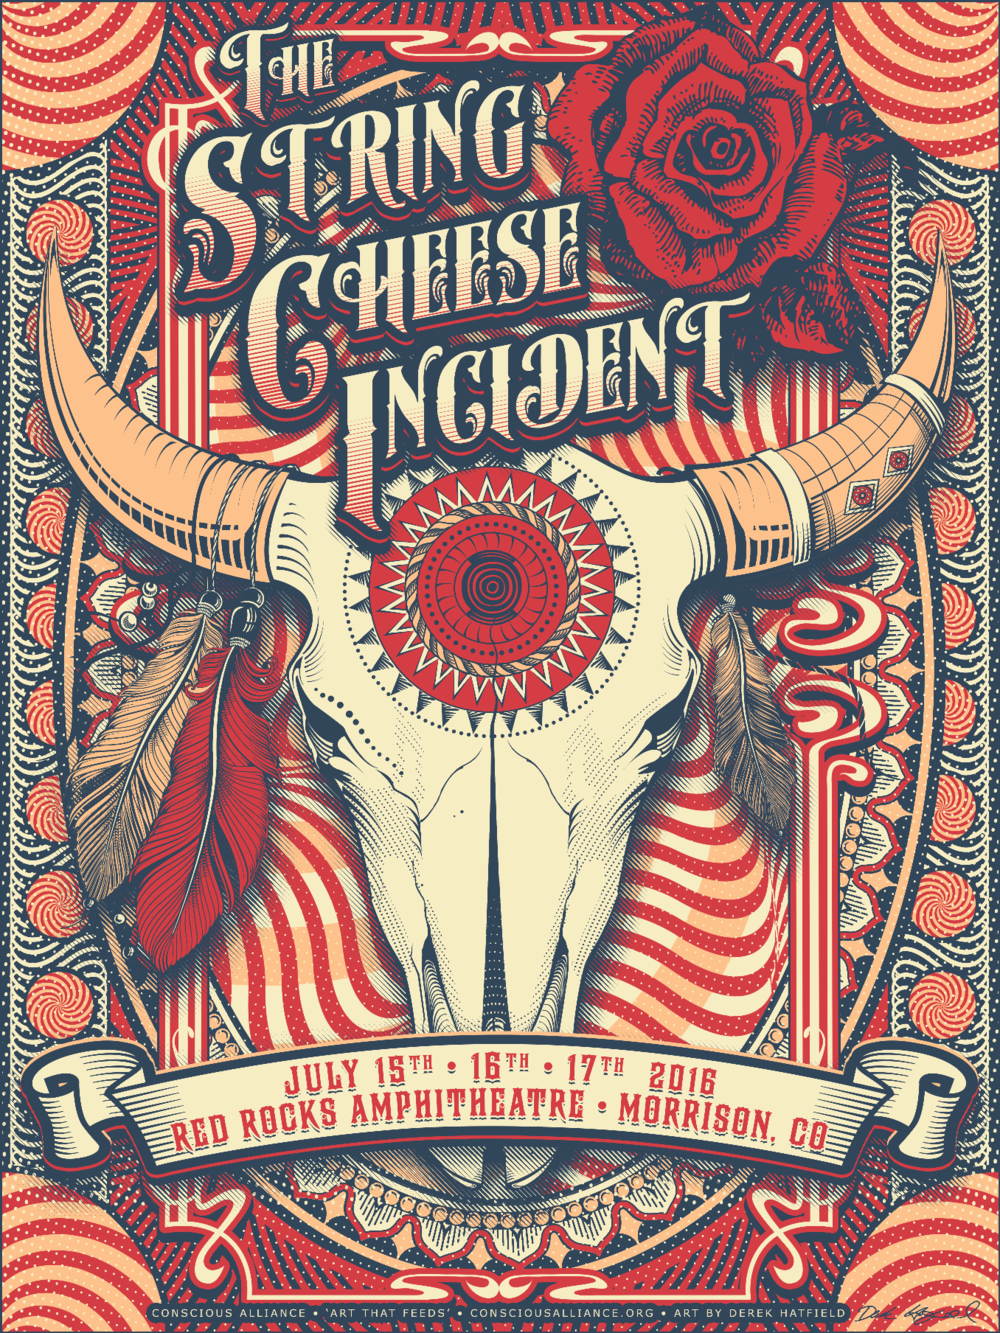 String Cheese Incident - 7.15,16,17.2016